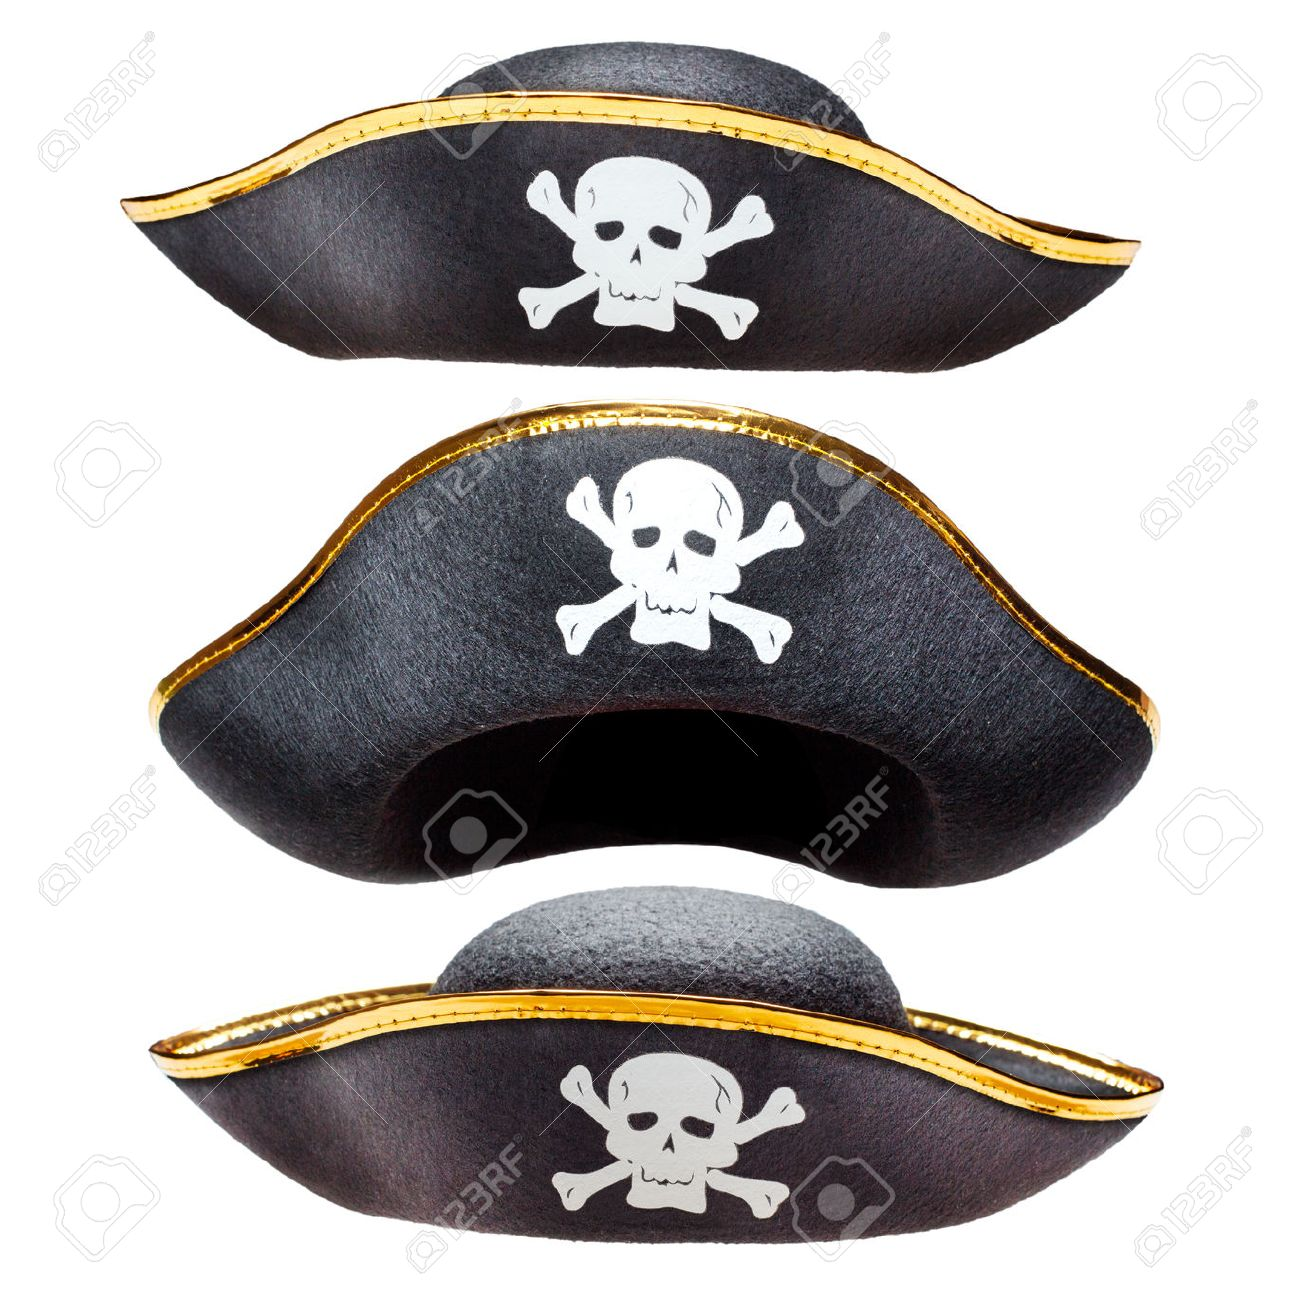 Pirate fancy dress hat with Jolly Roger - 46480464